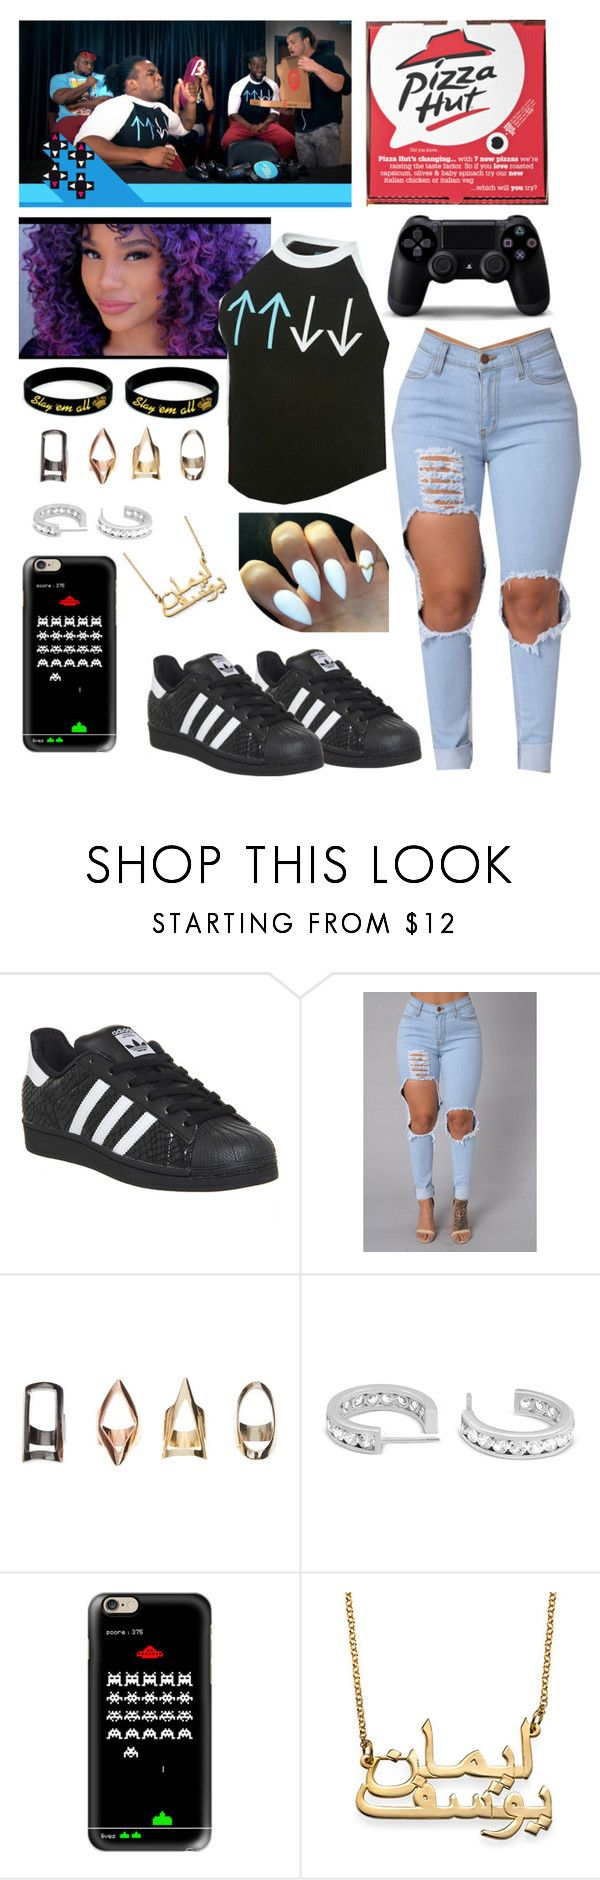 """ Brittany UpUpDownDown with Dolph Ziggler, Big E langston, Kofi Kingston and Austin Creed ( Xavier Woods )"" by queenofwrestling ❤ liked on Polyvore featuring adidas and Casetify"